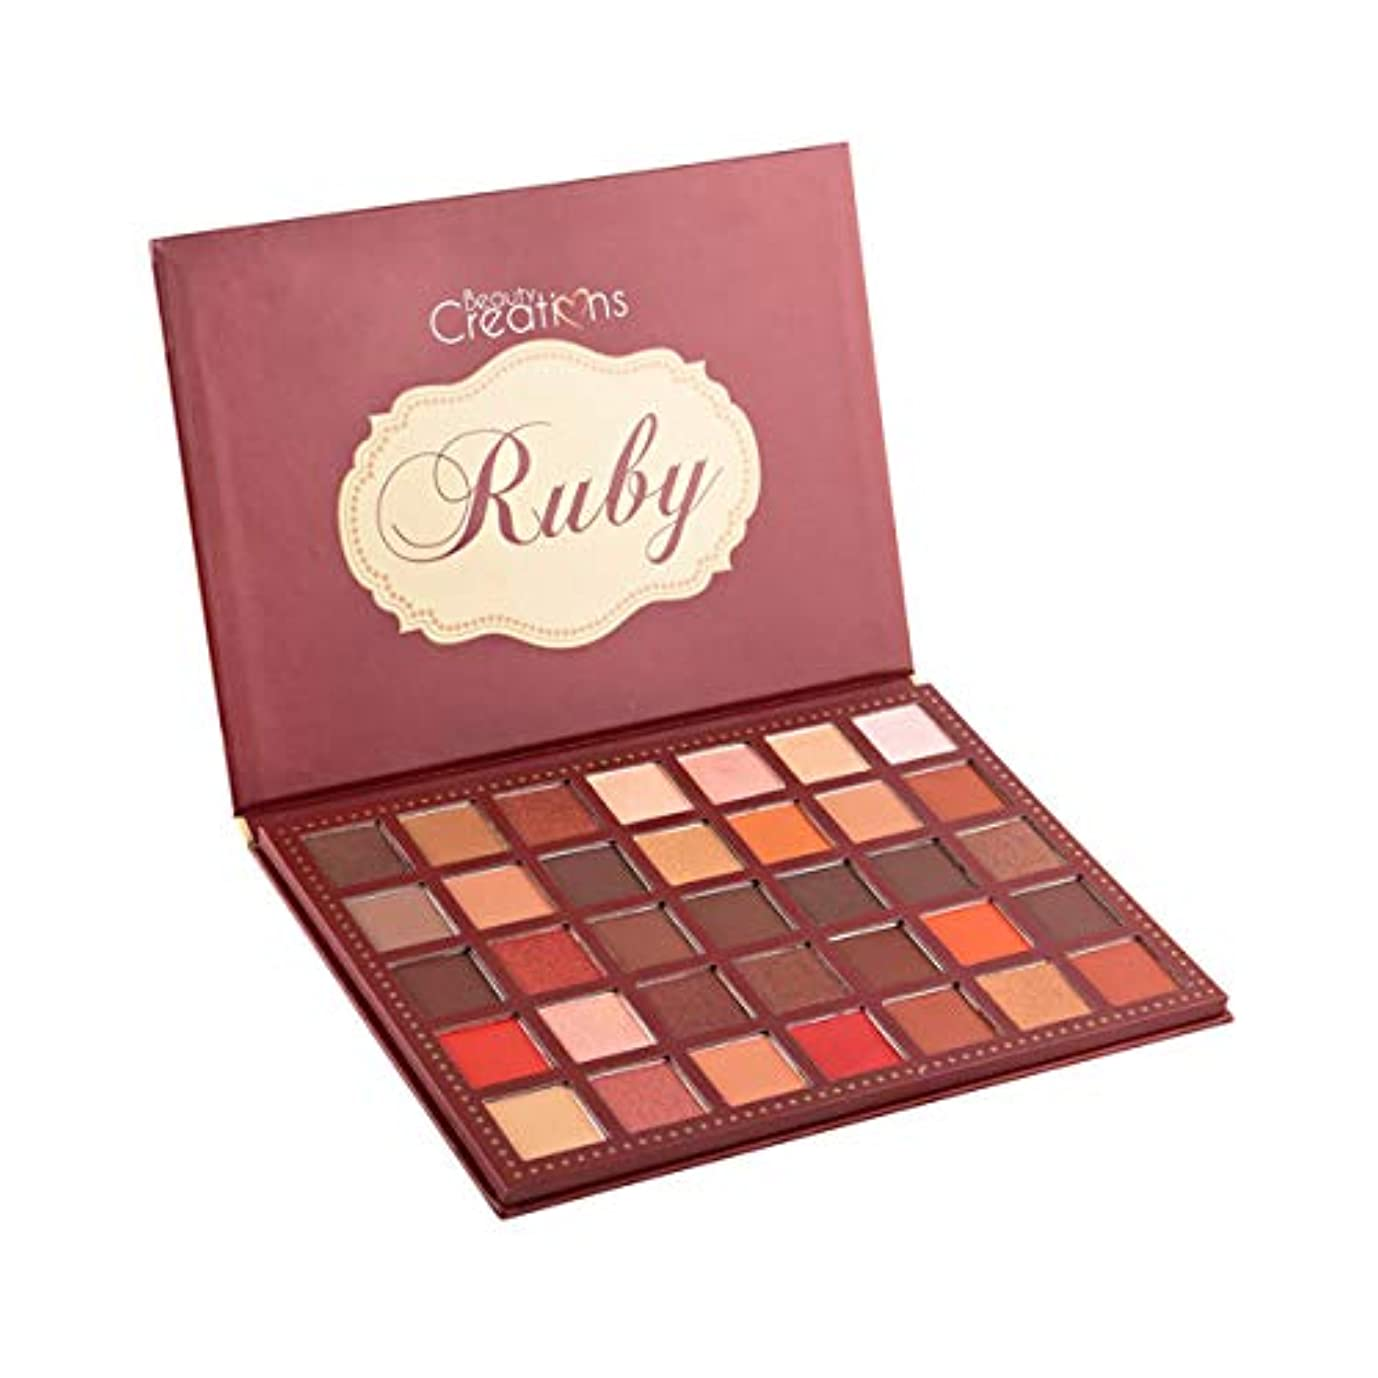 意義聖人腐食する(6 Pack) BEAUTY CREATIONS 35 Color Eyeshadow Palette - Ruby (並行輸入品)